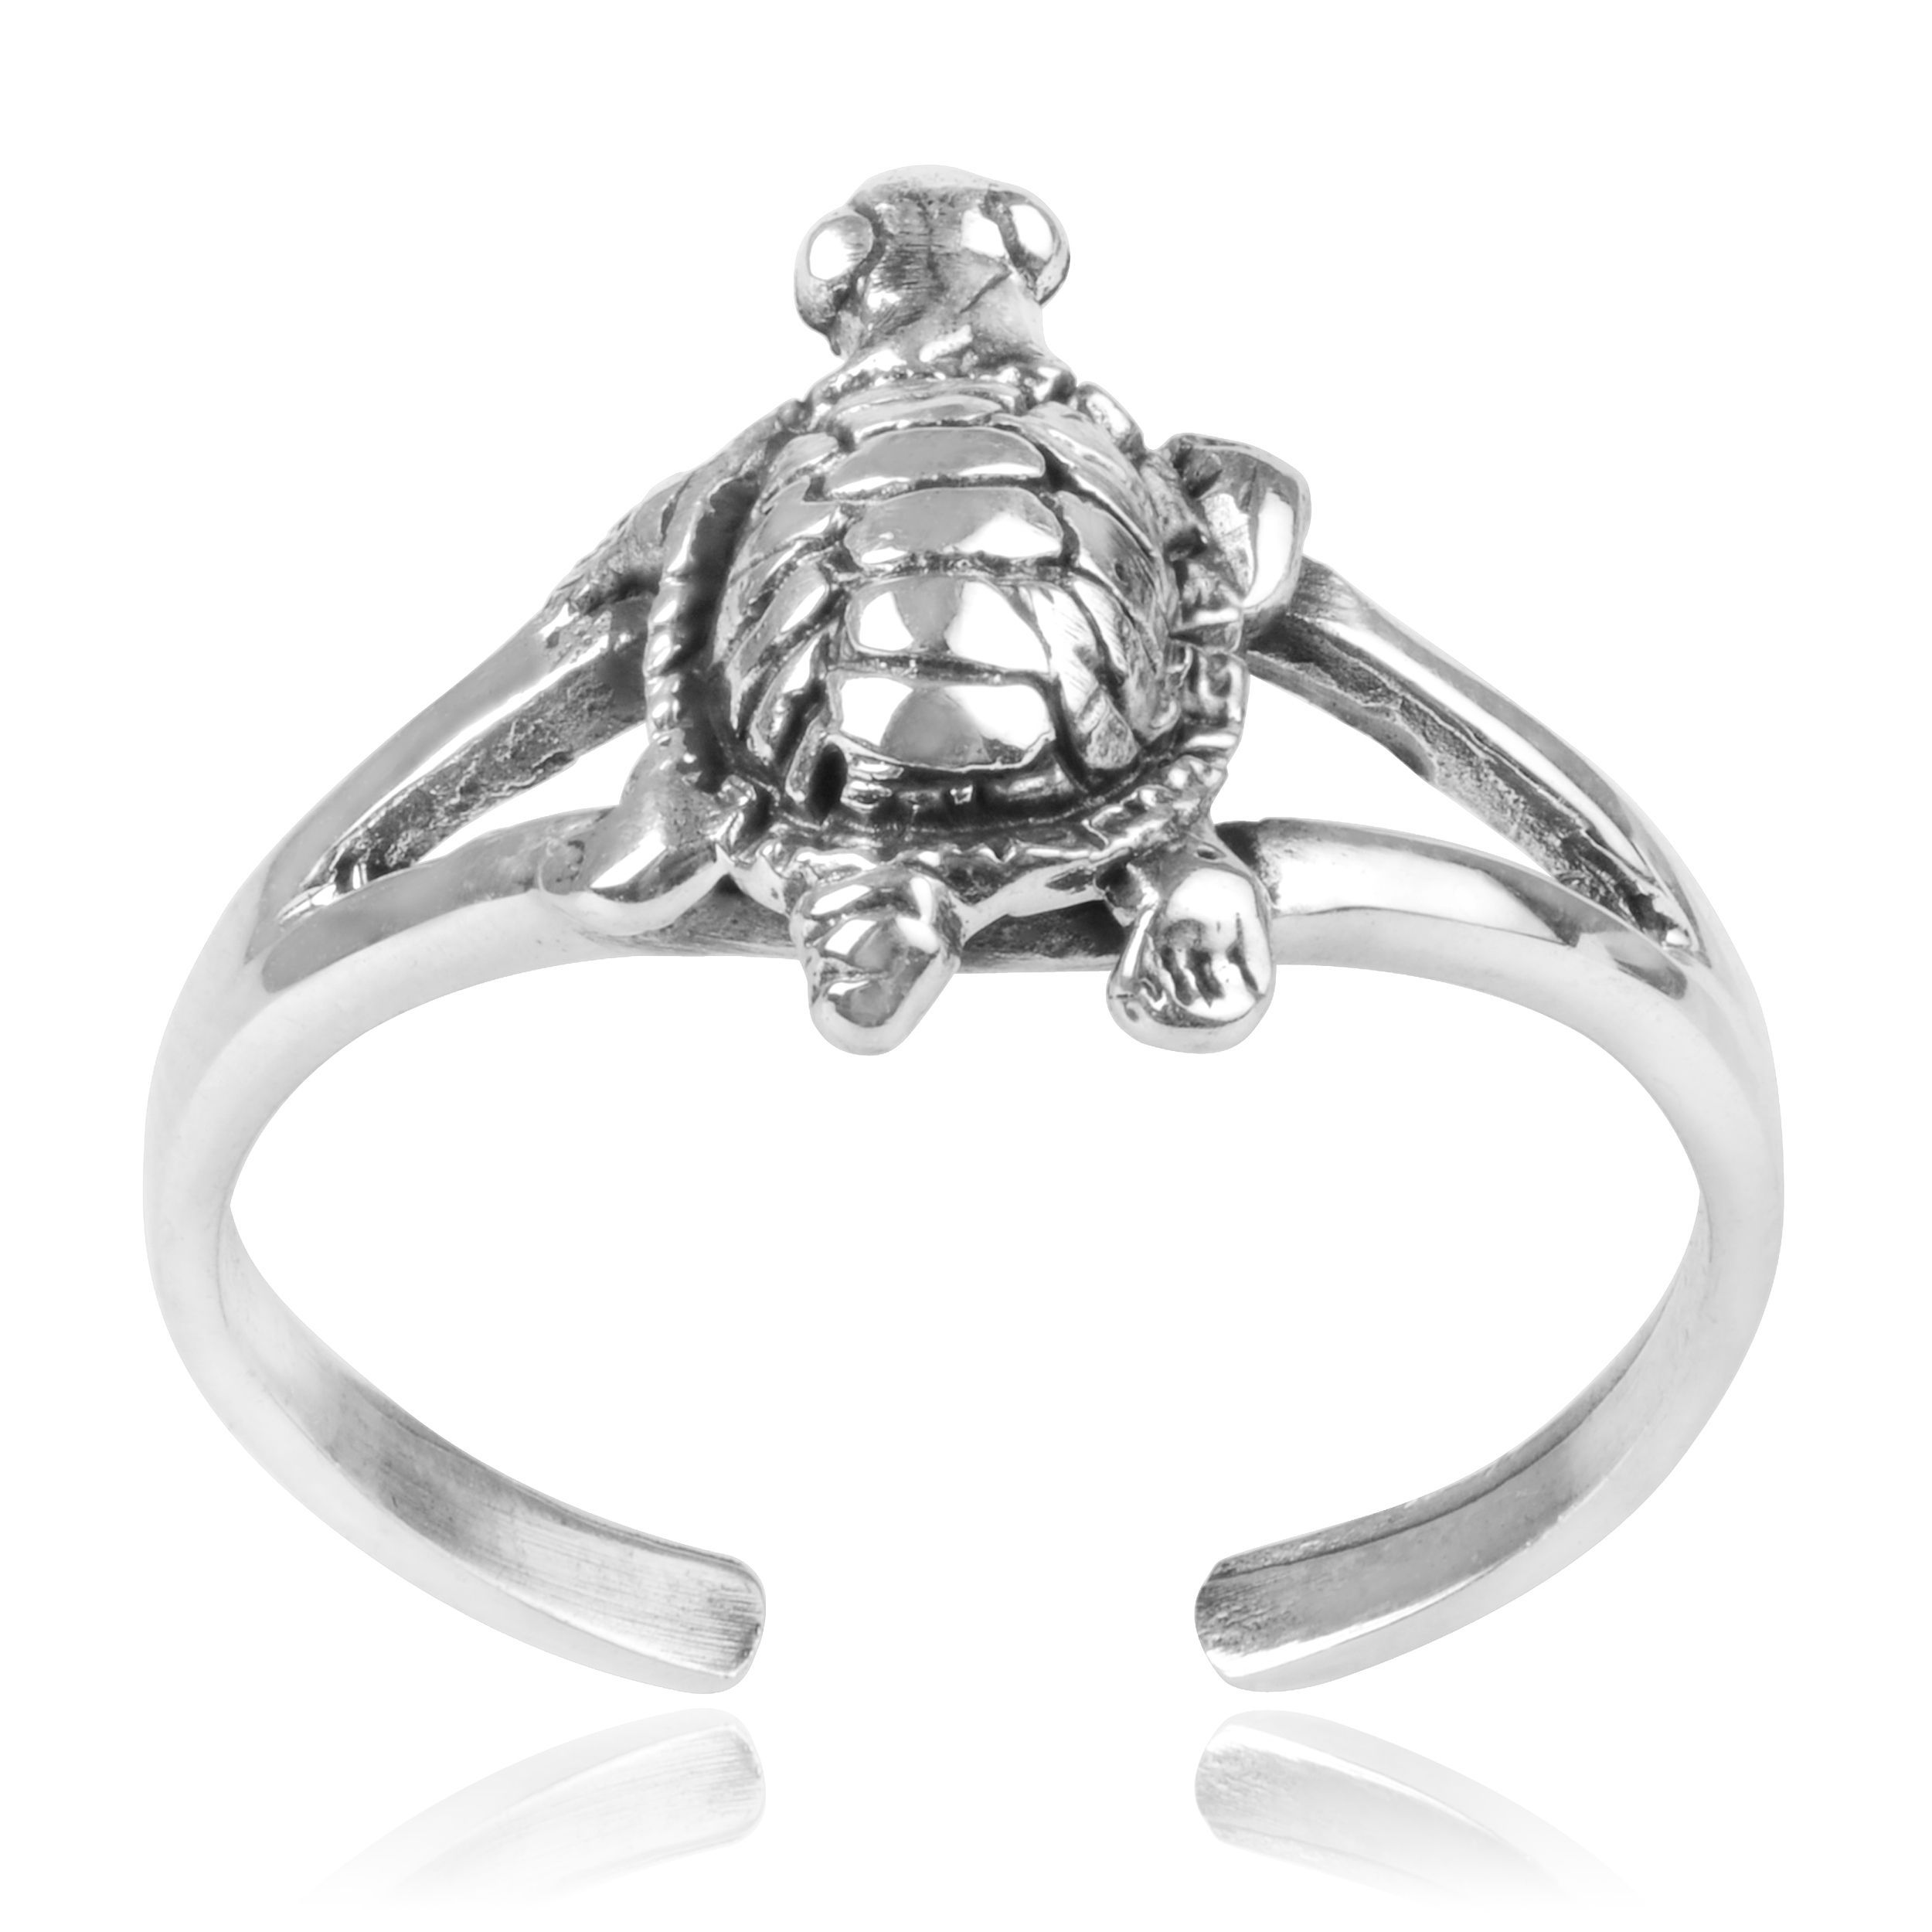 preciosa watches of overstock product jewelry turtle on pearl free silver orders mother ring la over shipping sterling rings